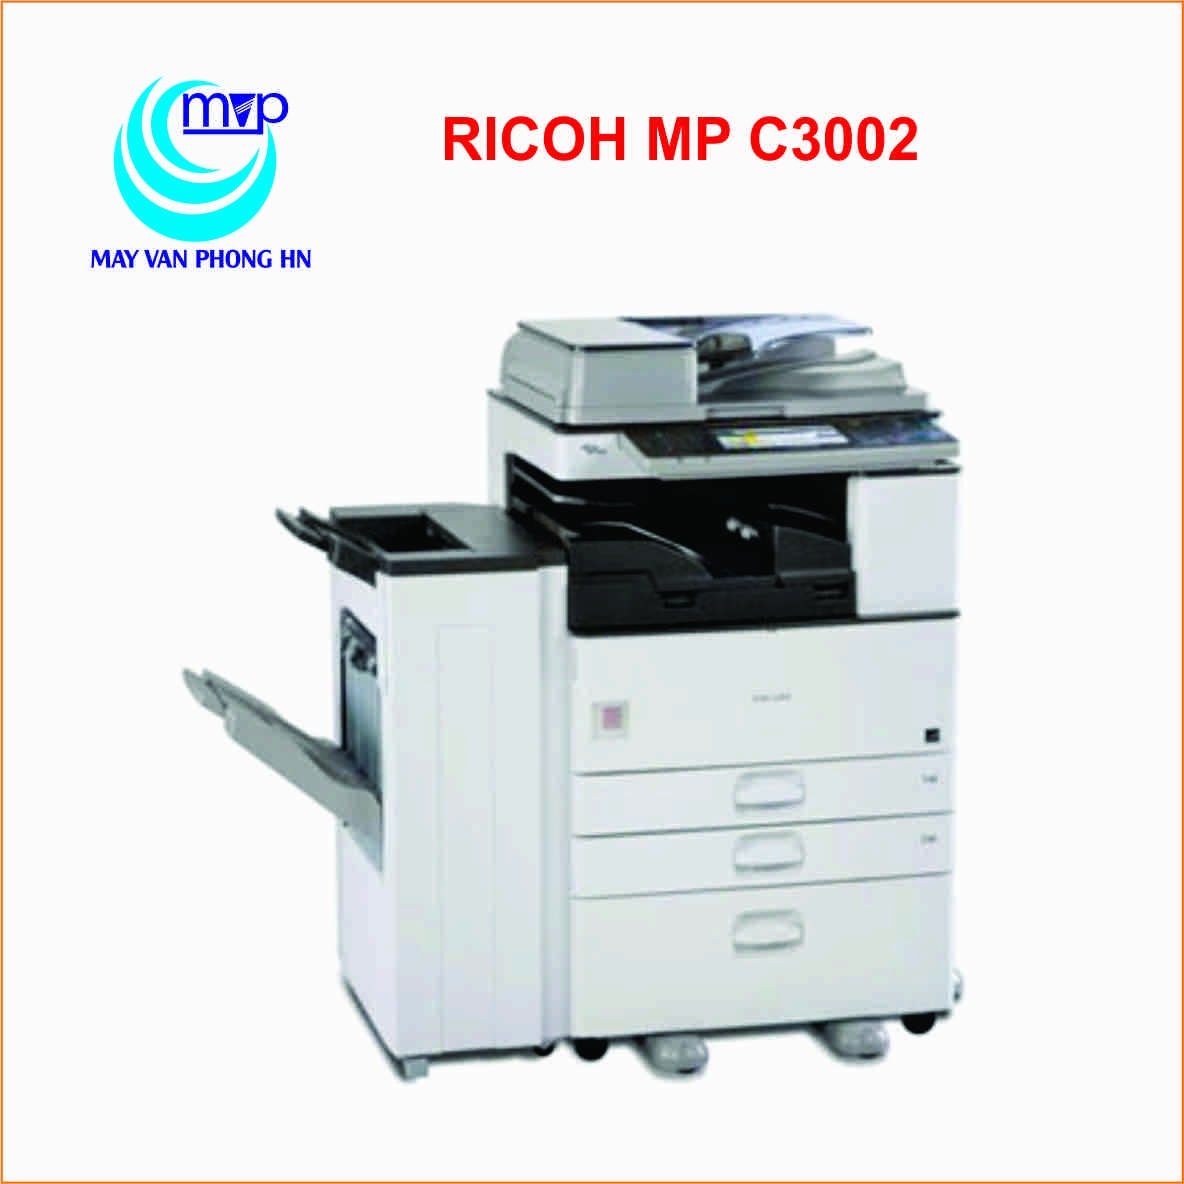 RICOH MP C3002